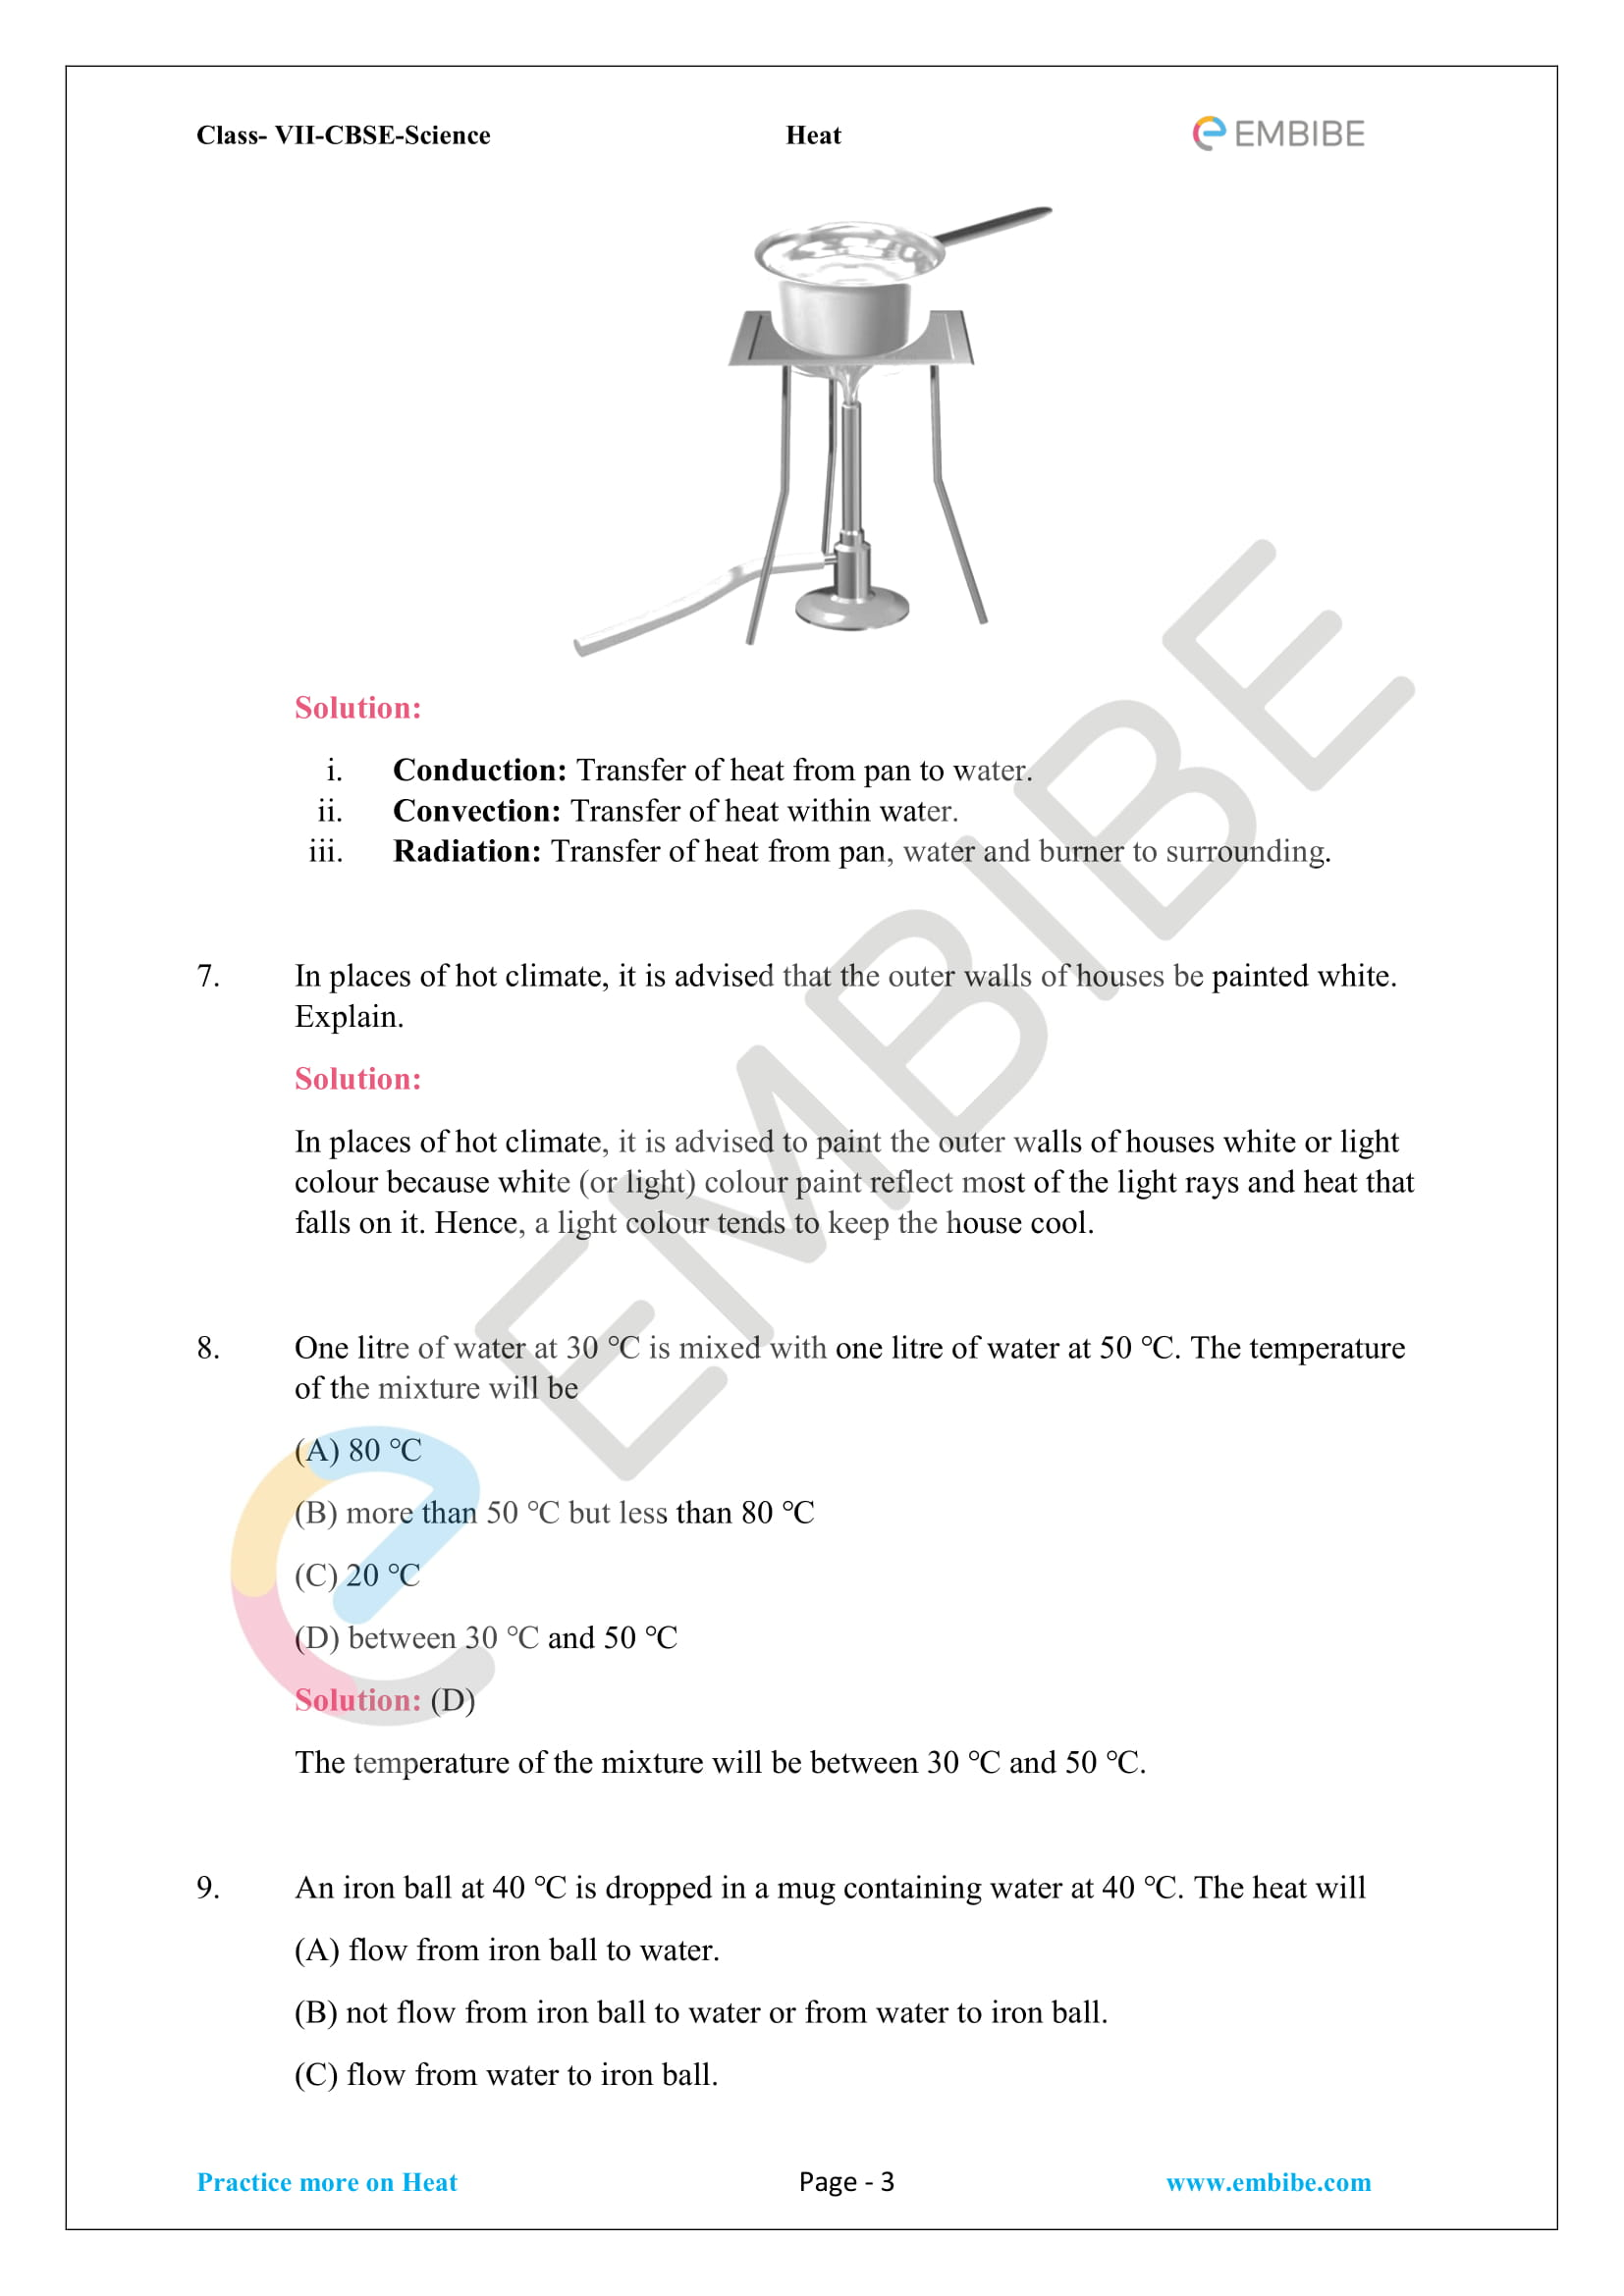 CBSE NCERT Solutions for Class 7 Science Chapter 4 Heat